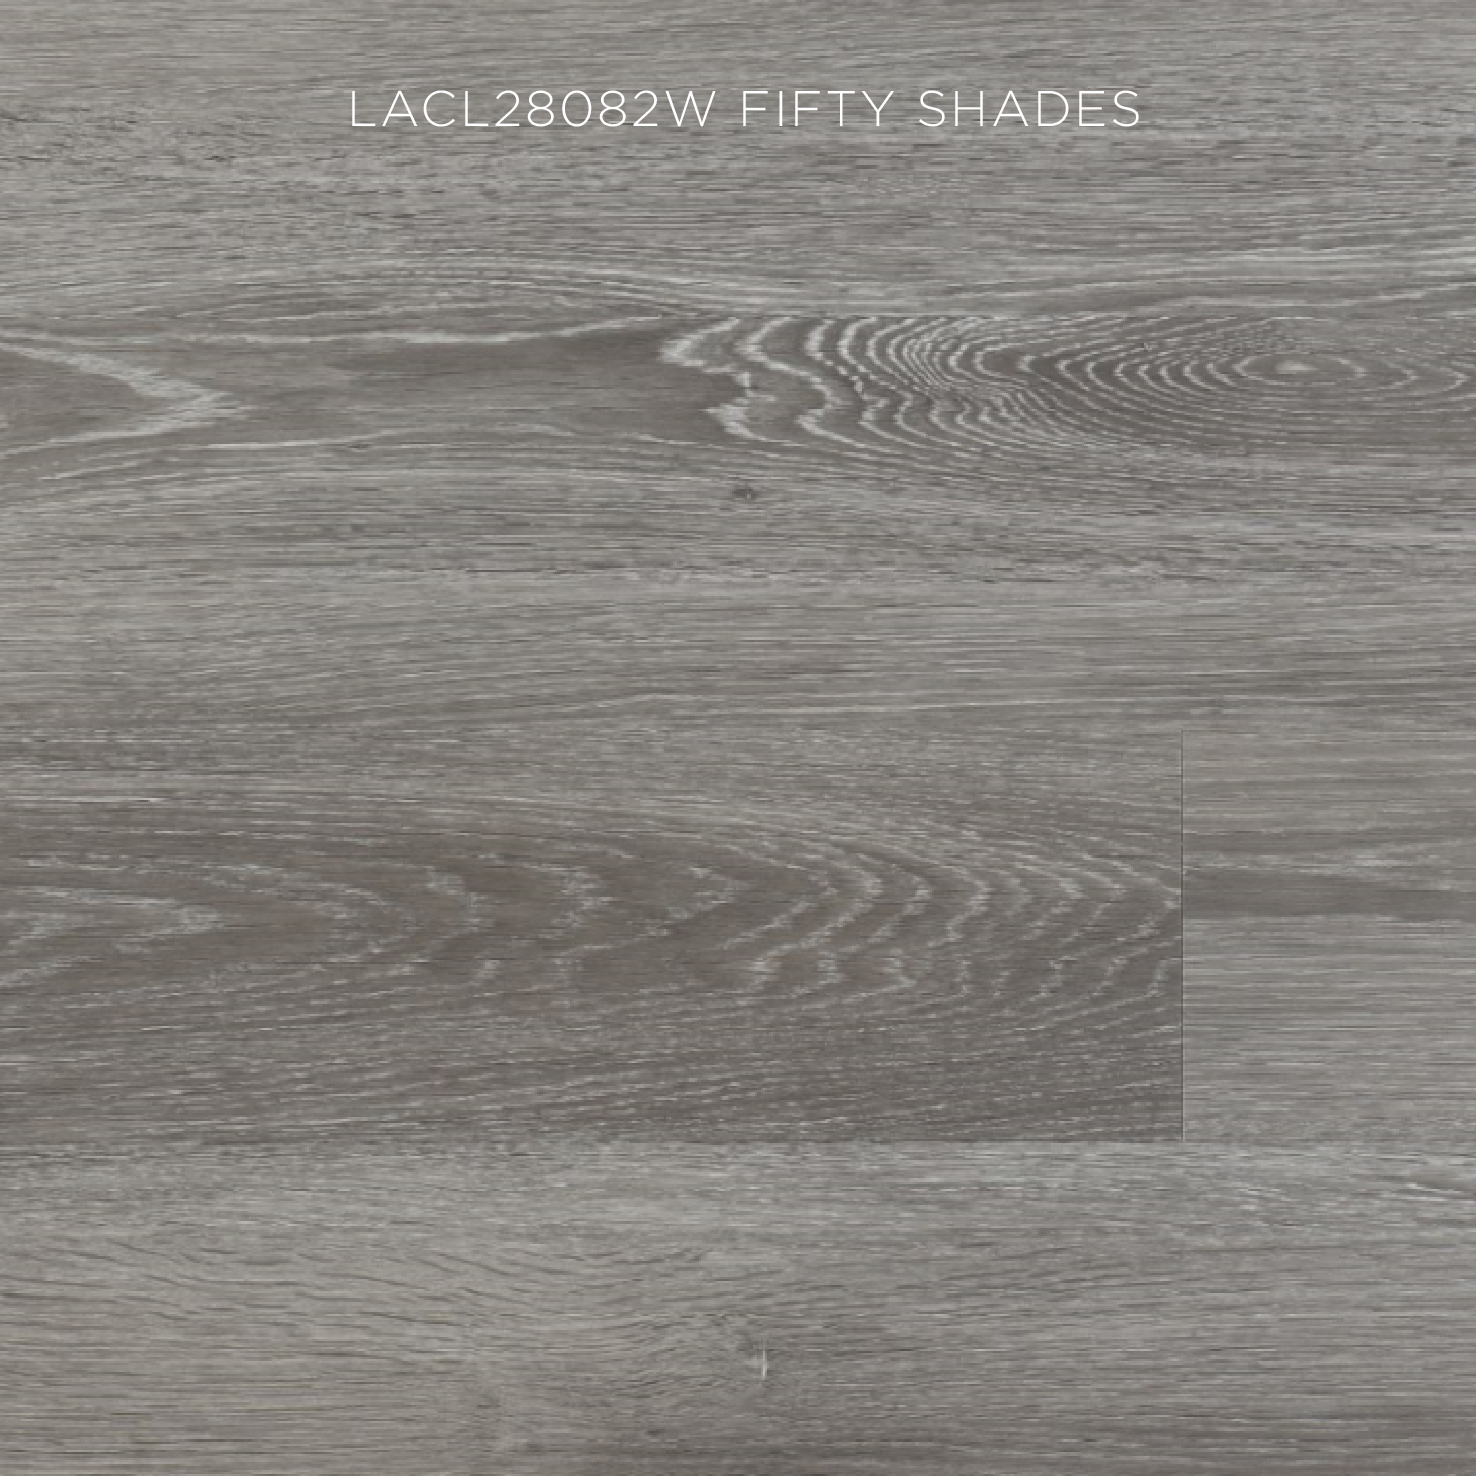 LACL28082W Fifty Shades